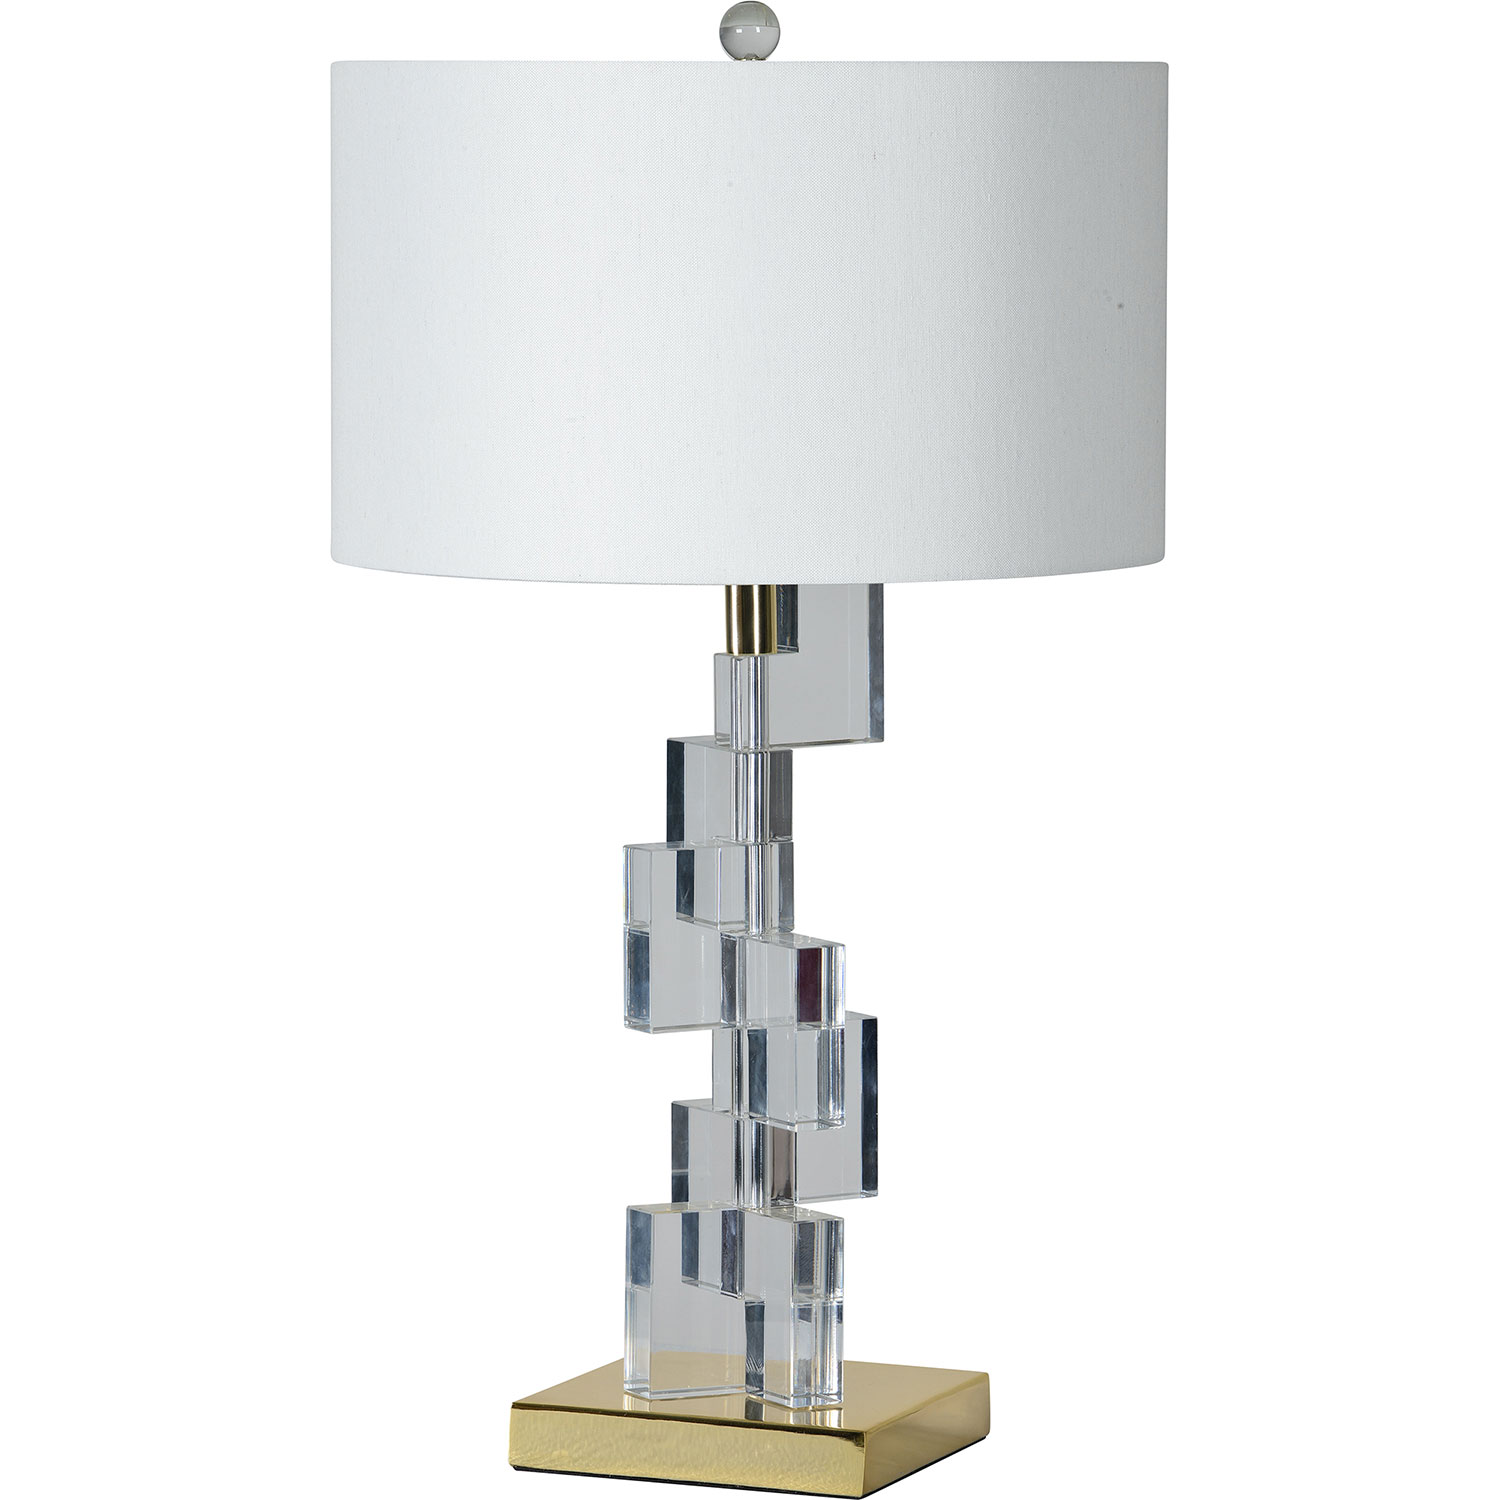 Ren-Wil Montford Table Lamp - Champagne